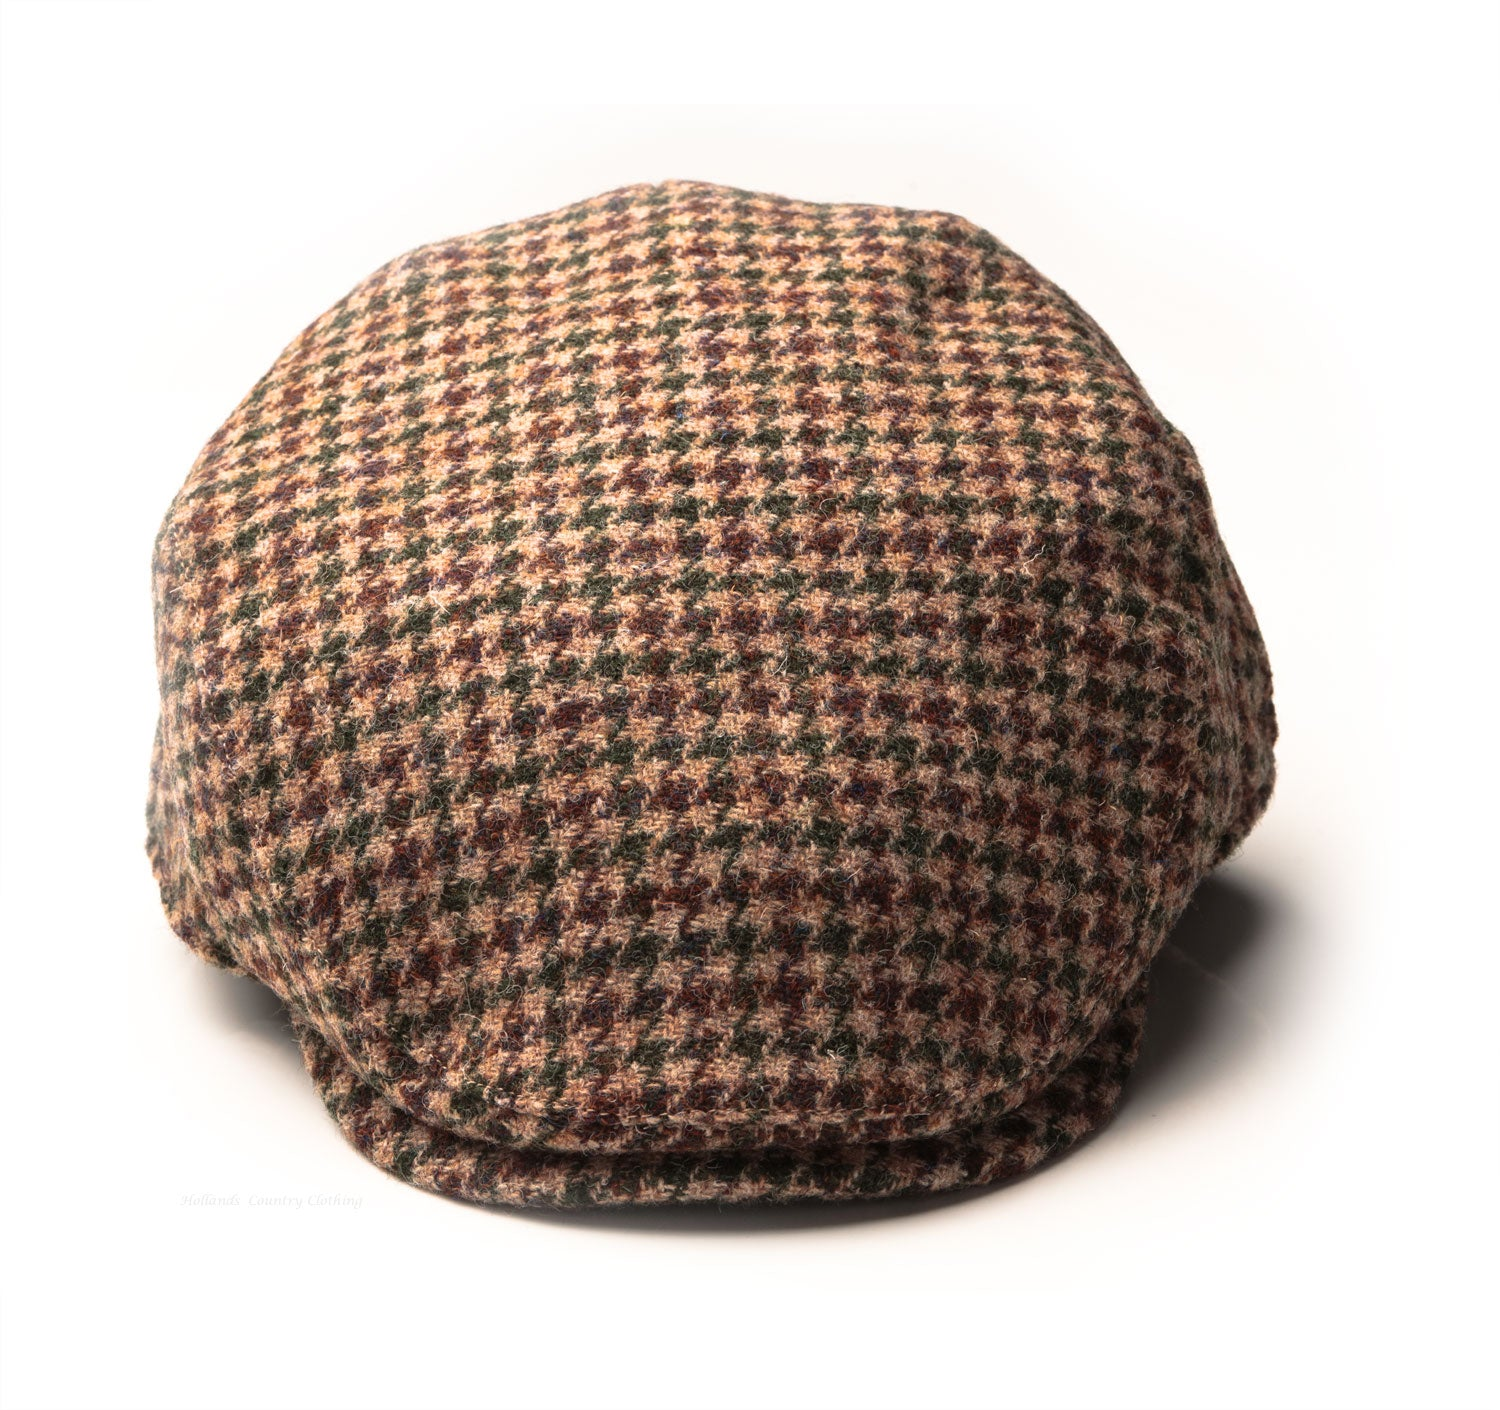 bcf9a6592a1 Heather Highland Harris Tweed Flat Cap